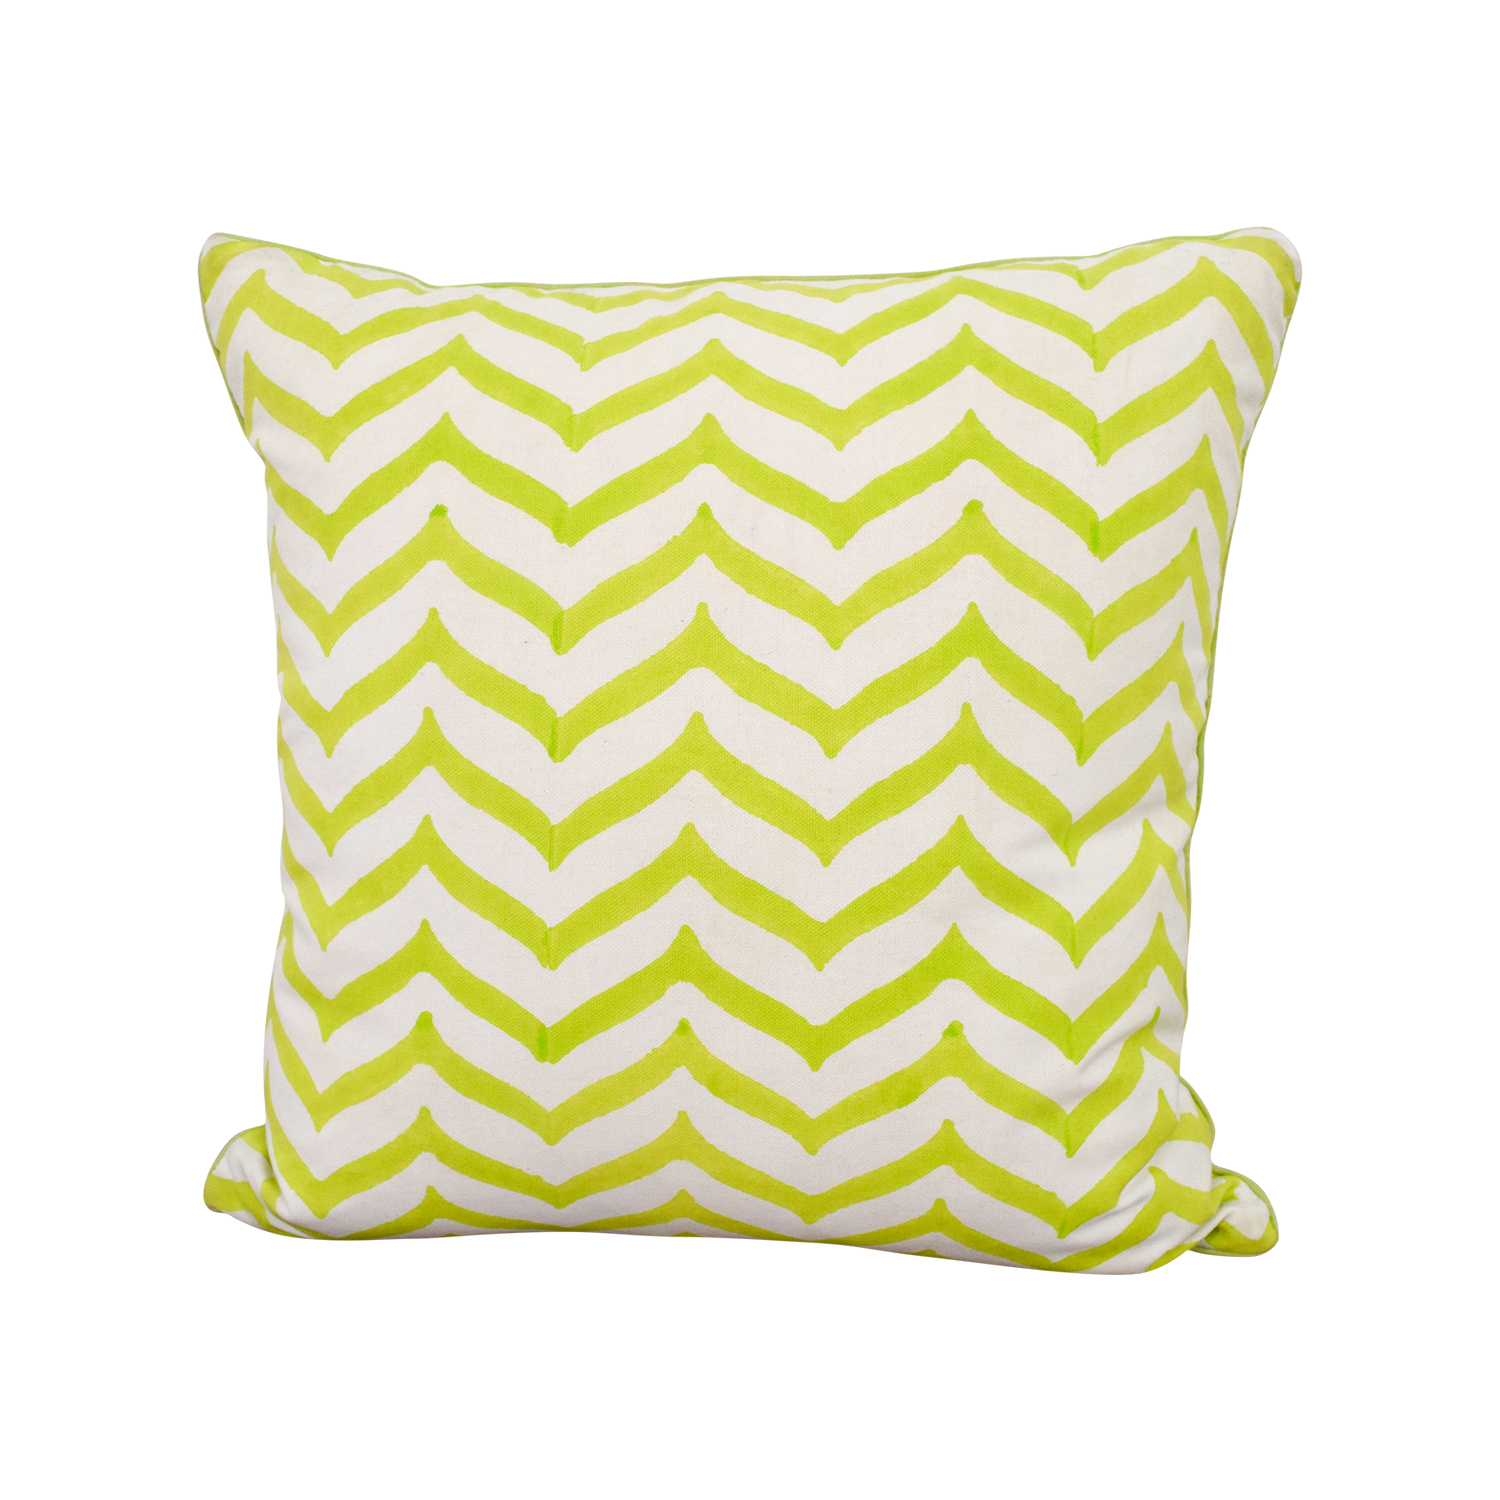 Roller Rabbit Roller Rabbit Green and White Zig Zag Toss Pillow dimensions